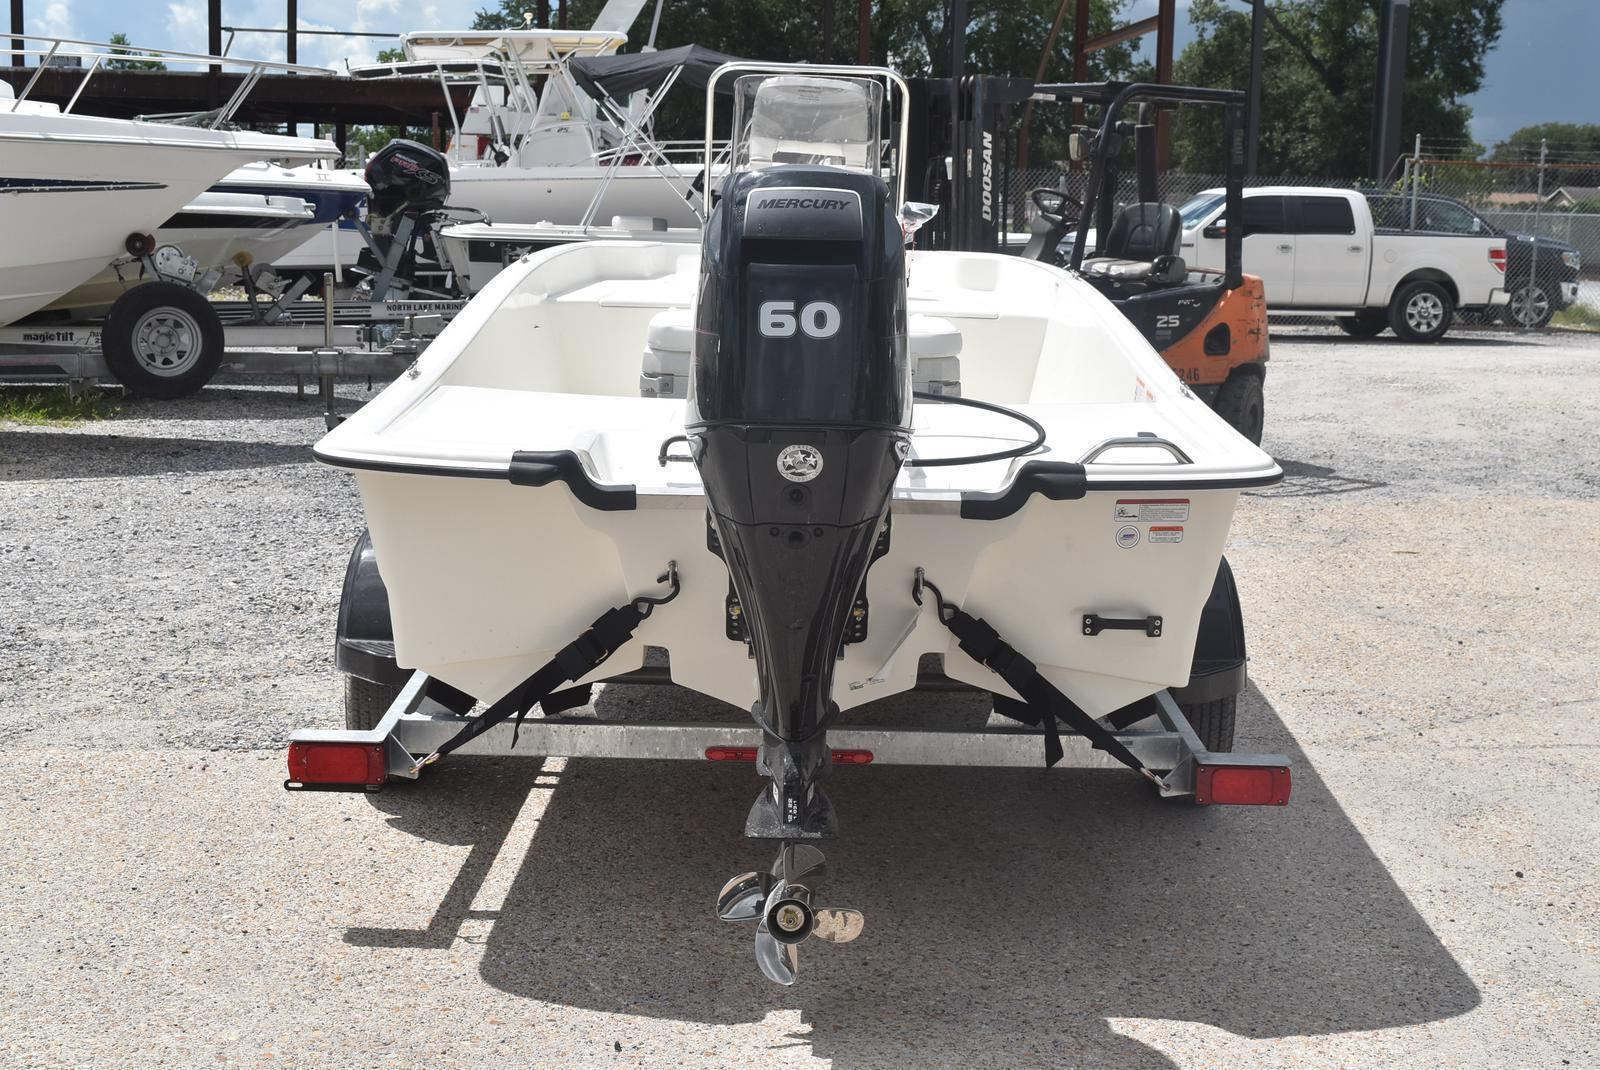 2020 Mako boat for sale, model of the boat is Pro Skiff 17, 75 ELPT & Image # 581 of 702